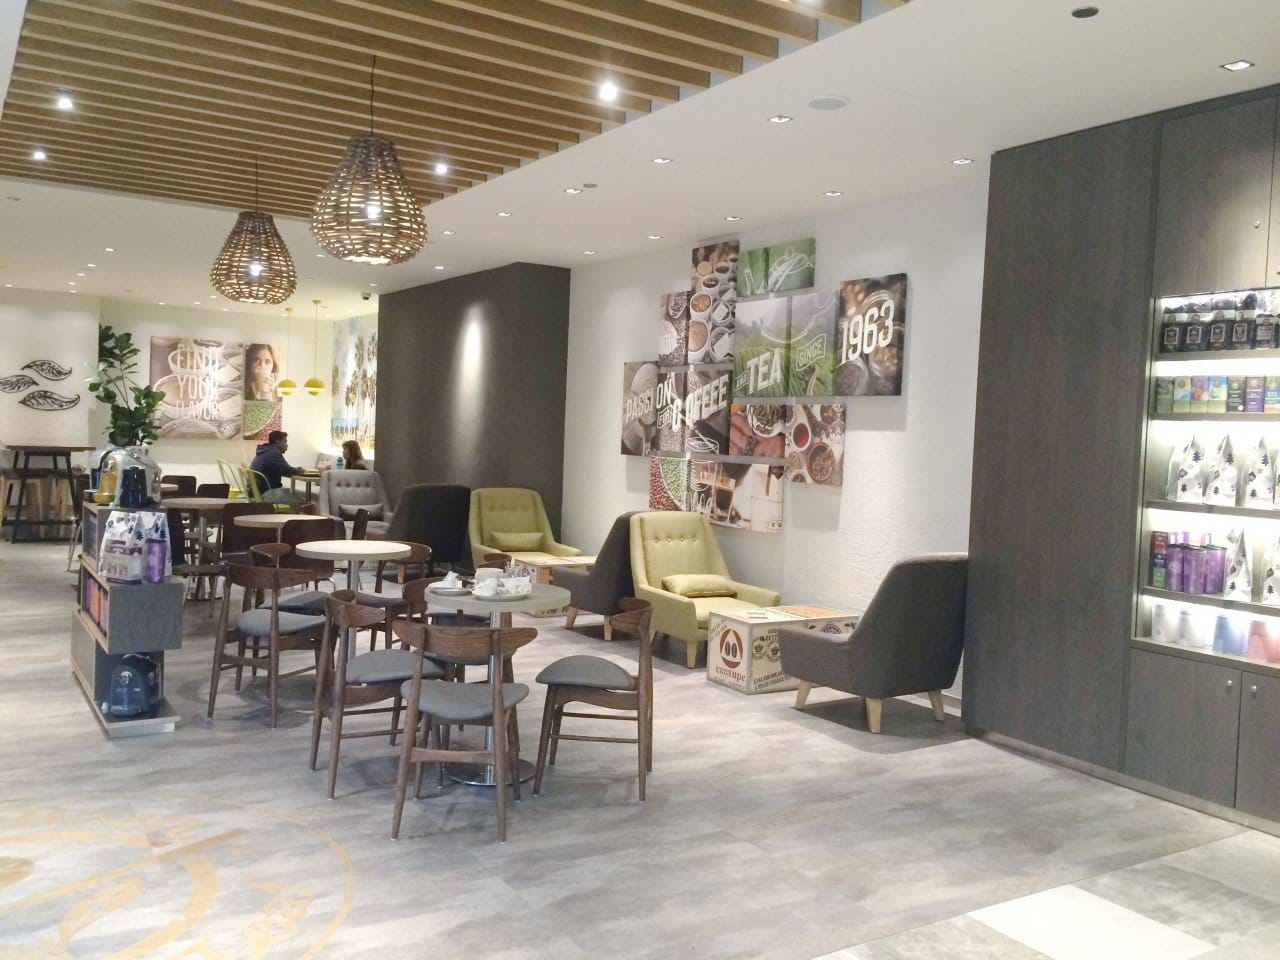 Coffee Bean - Alexandra Retail Centre (ARC) | Products Seen: [Hanoi Chair, Shannon Barchair – Lowback, Ichiyo 1-Seater Sofa & Customised Laminated Tabletop with Traxtor Round Table Base]